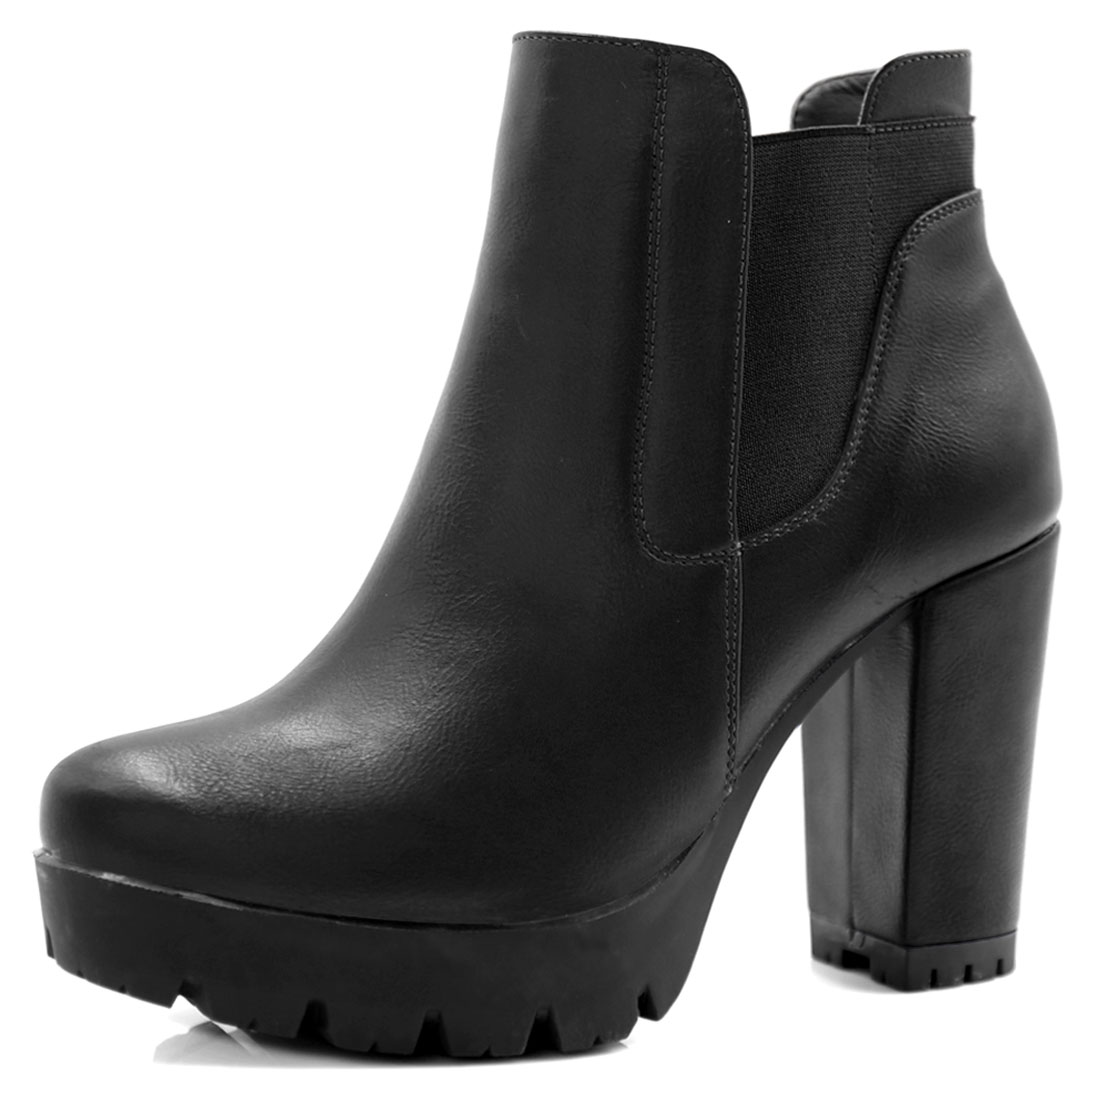 Women Chunky High Heel Platform Zipper Chelsea Boots Black US 6